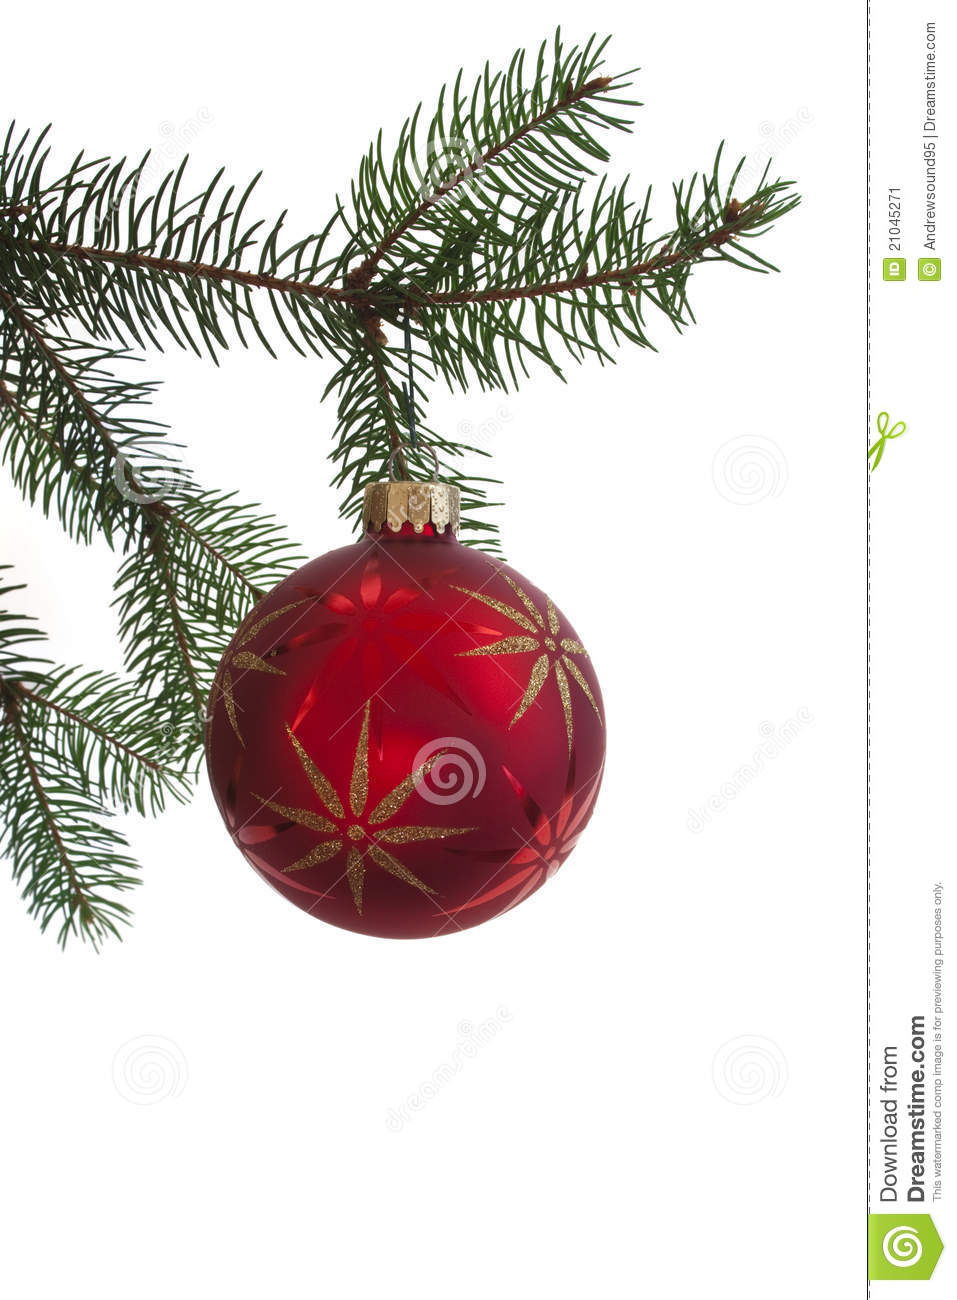 Hanging christmas ornament stock image image 21045271 - Hanging christmas ornaments ...